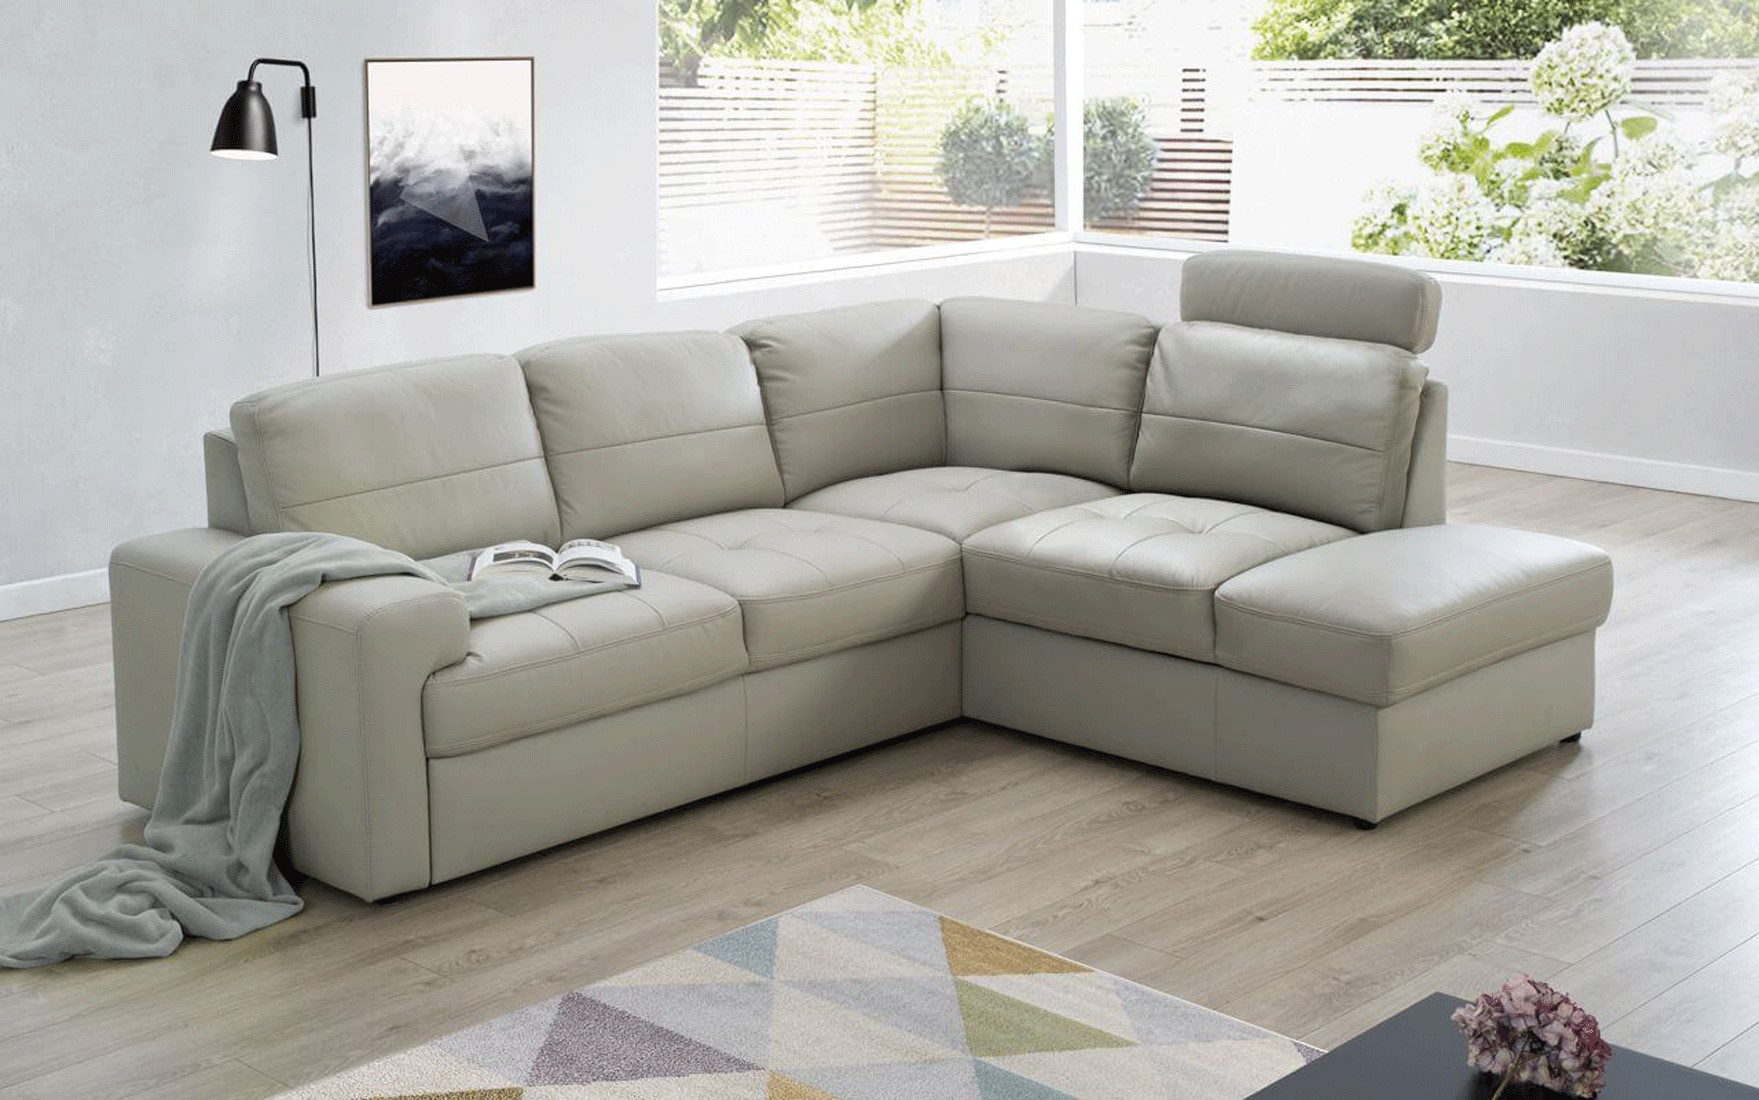 Brands Galla Leather Collection, Europe Ella Sectional Right w/Bed & Storage